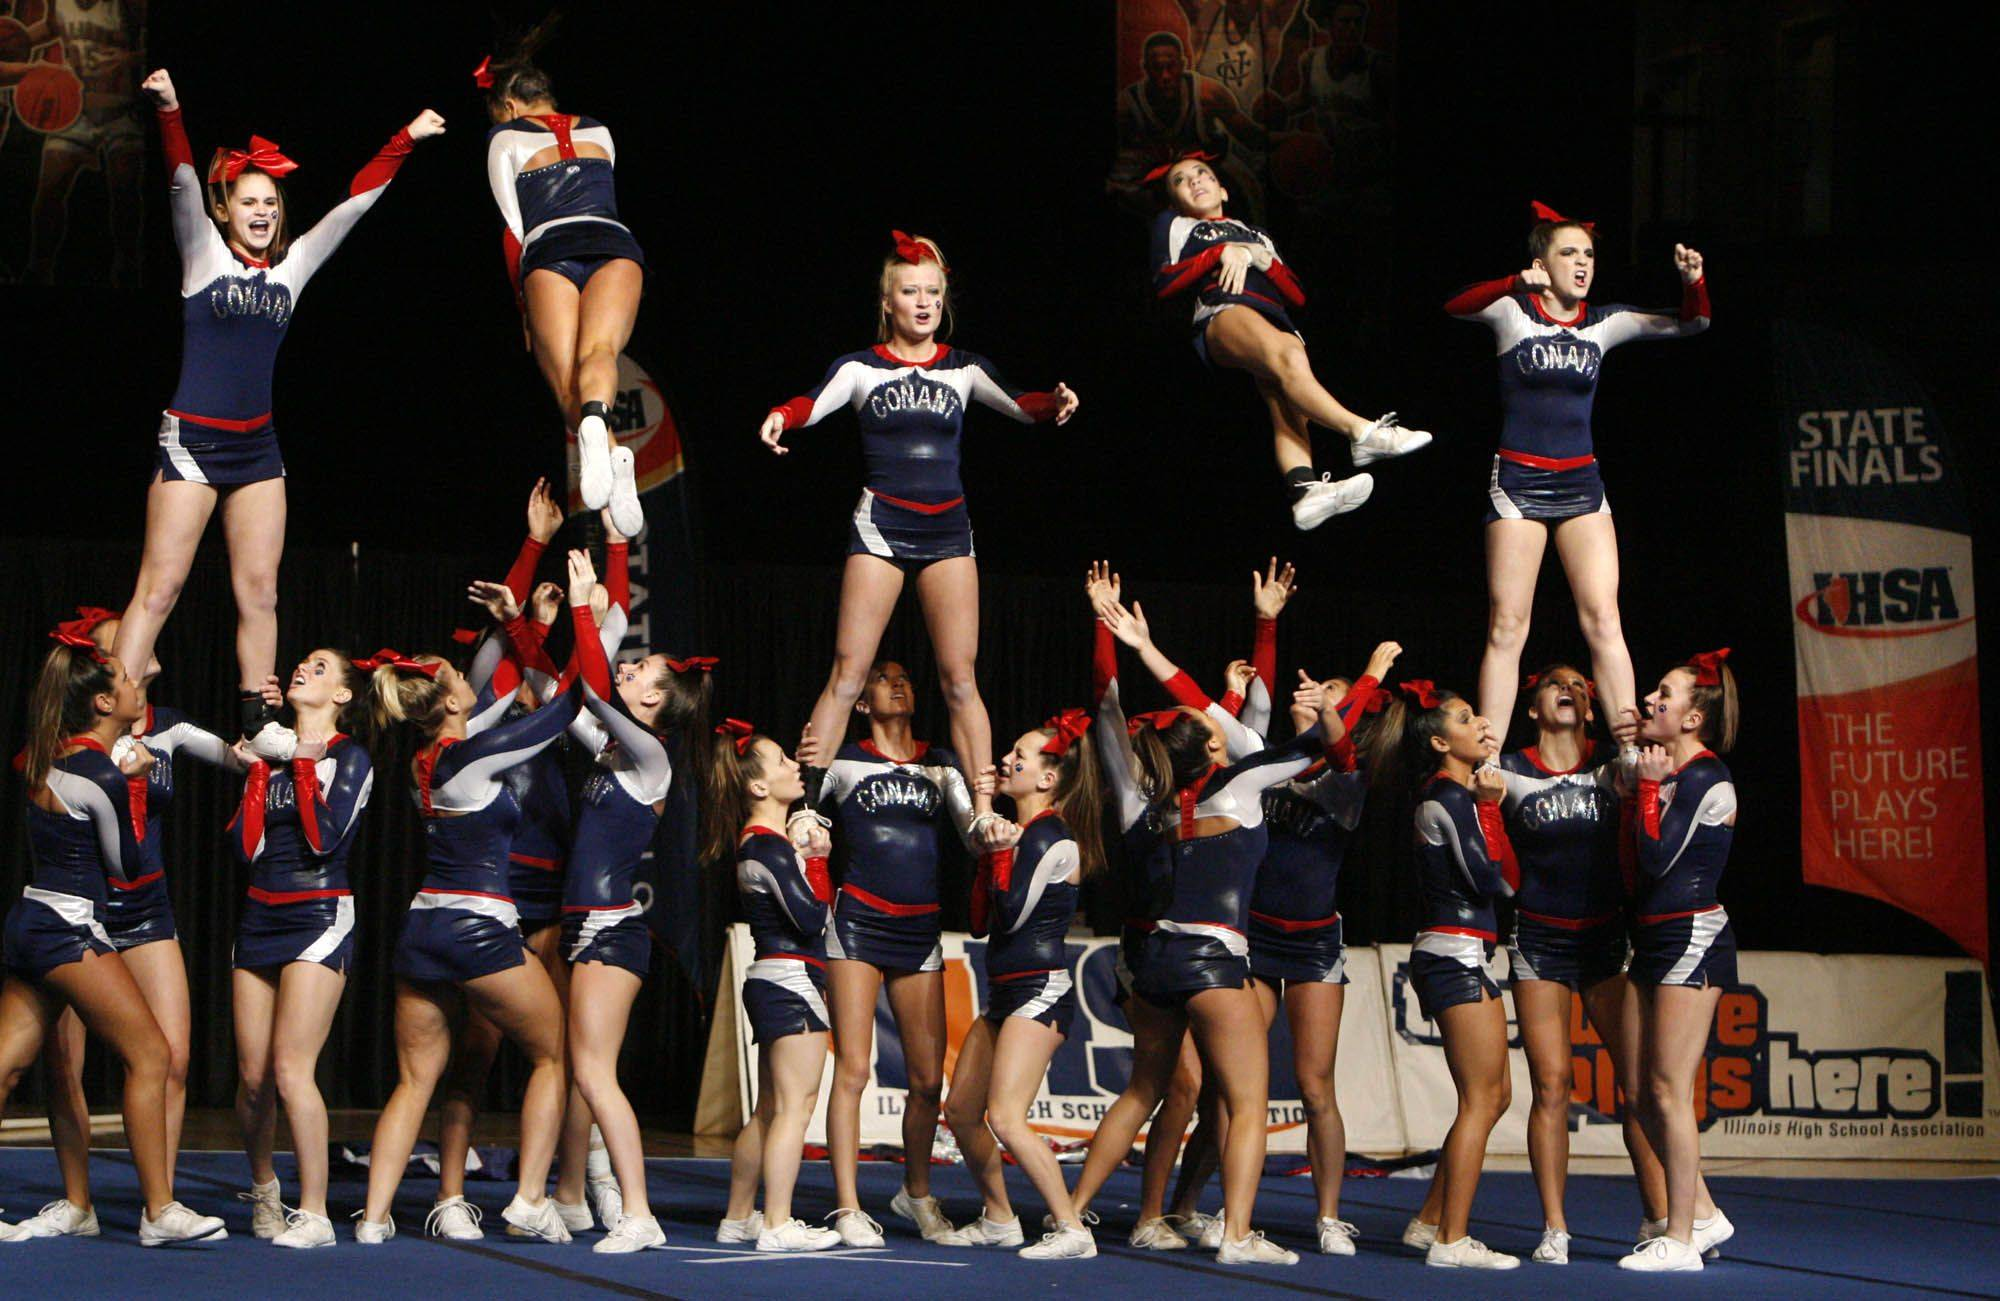 Conant performs at IHSA cheerleading state finals at U.S. Cellular Coliseum in Bloomington on Saturday, February 4th.